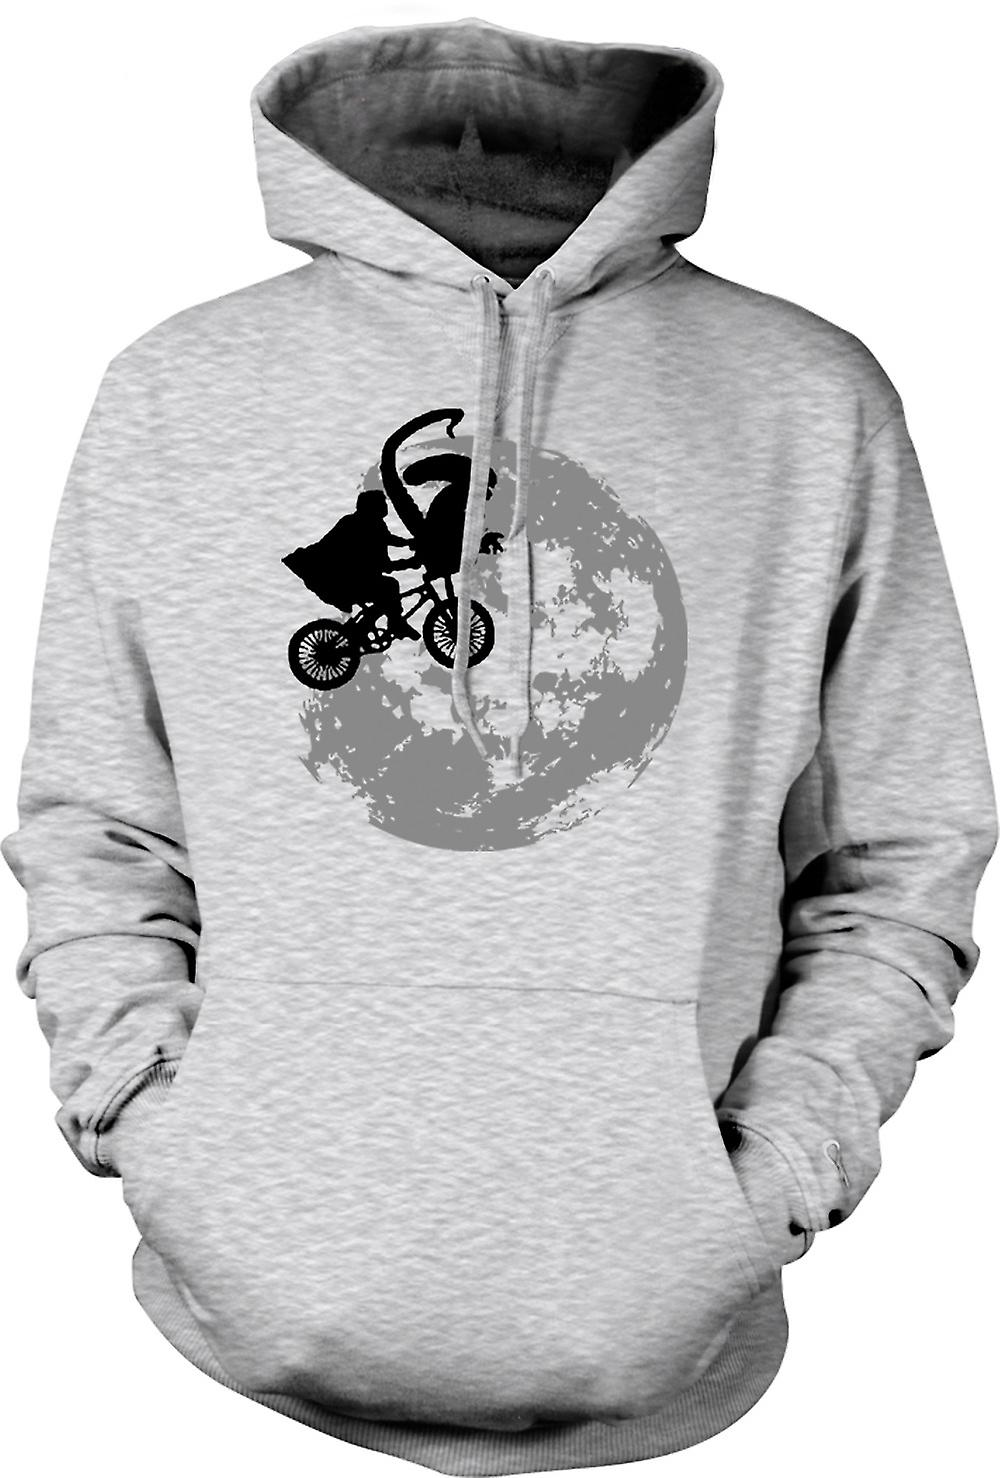 Mens Hoodie - ET Alien - Pop Art - Cool - Sci-Fi